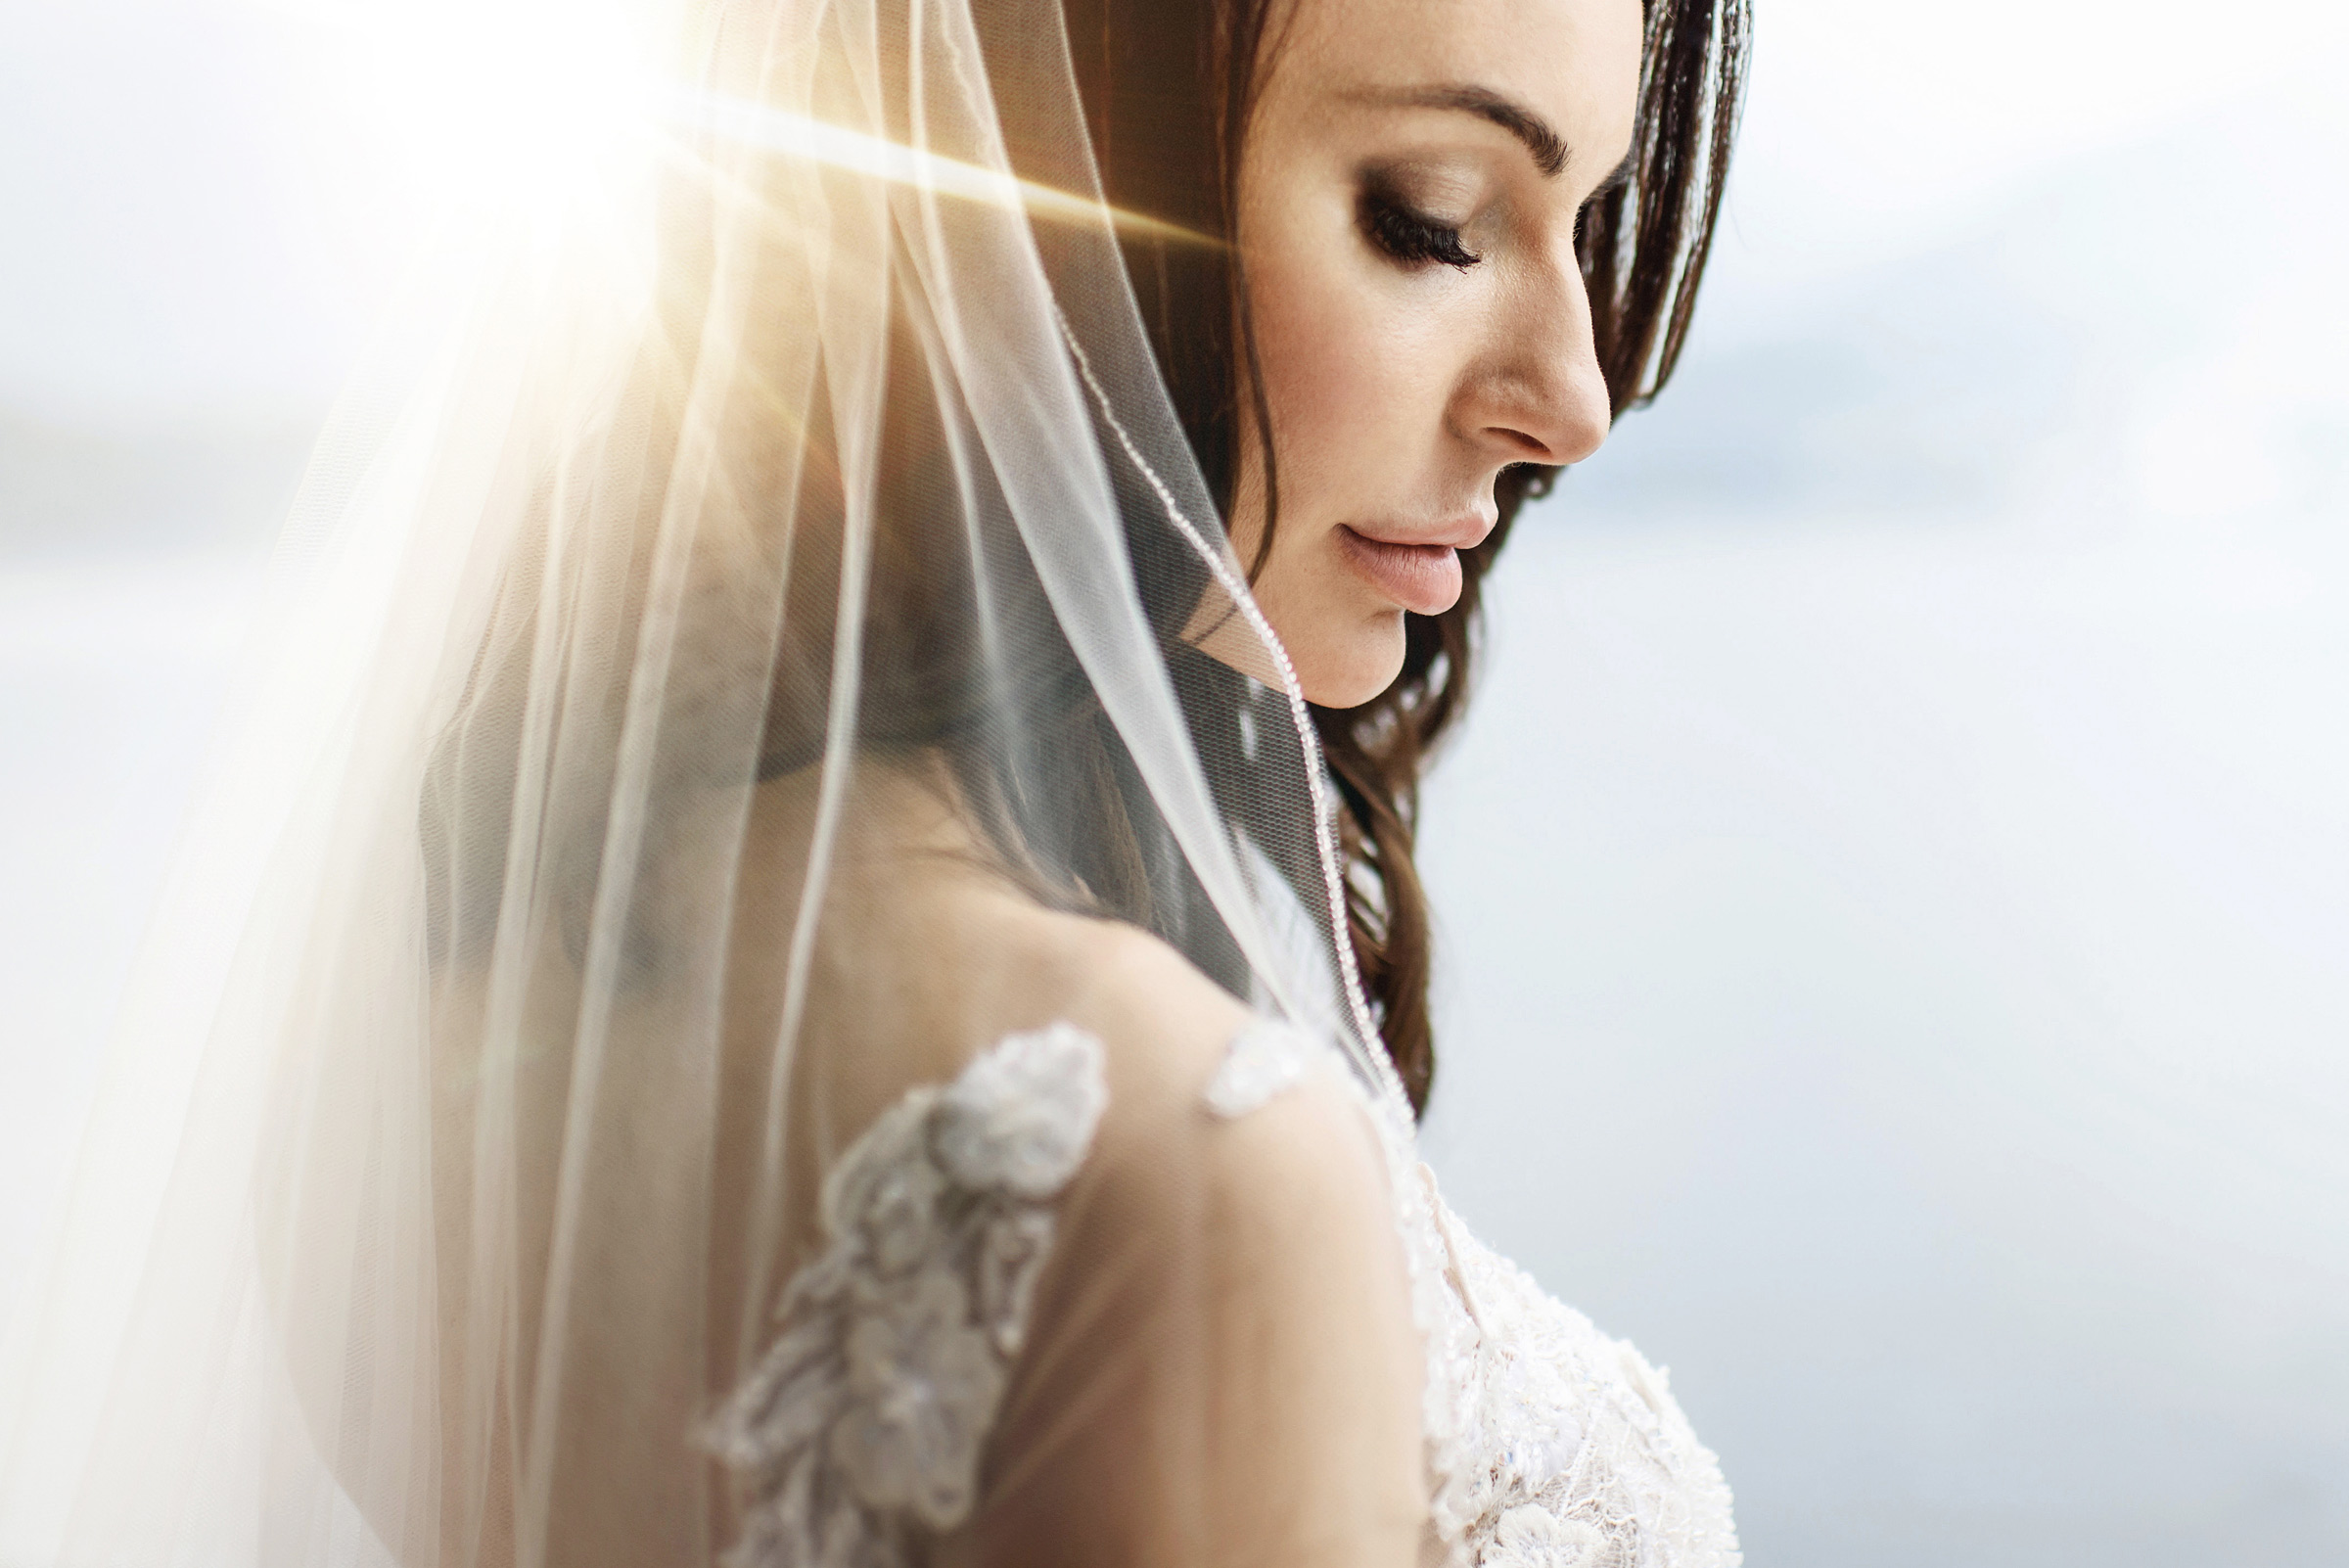 50 best wedding portraits of the decade - Ross Harvey Photography